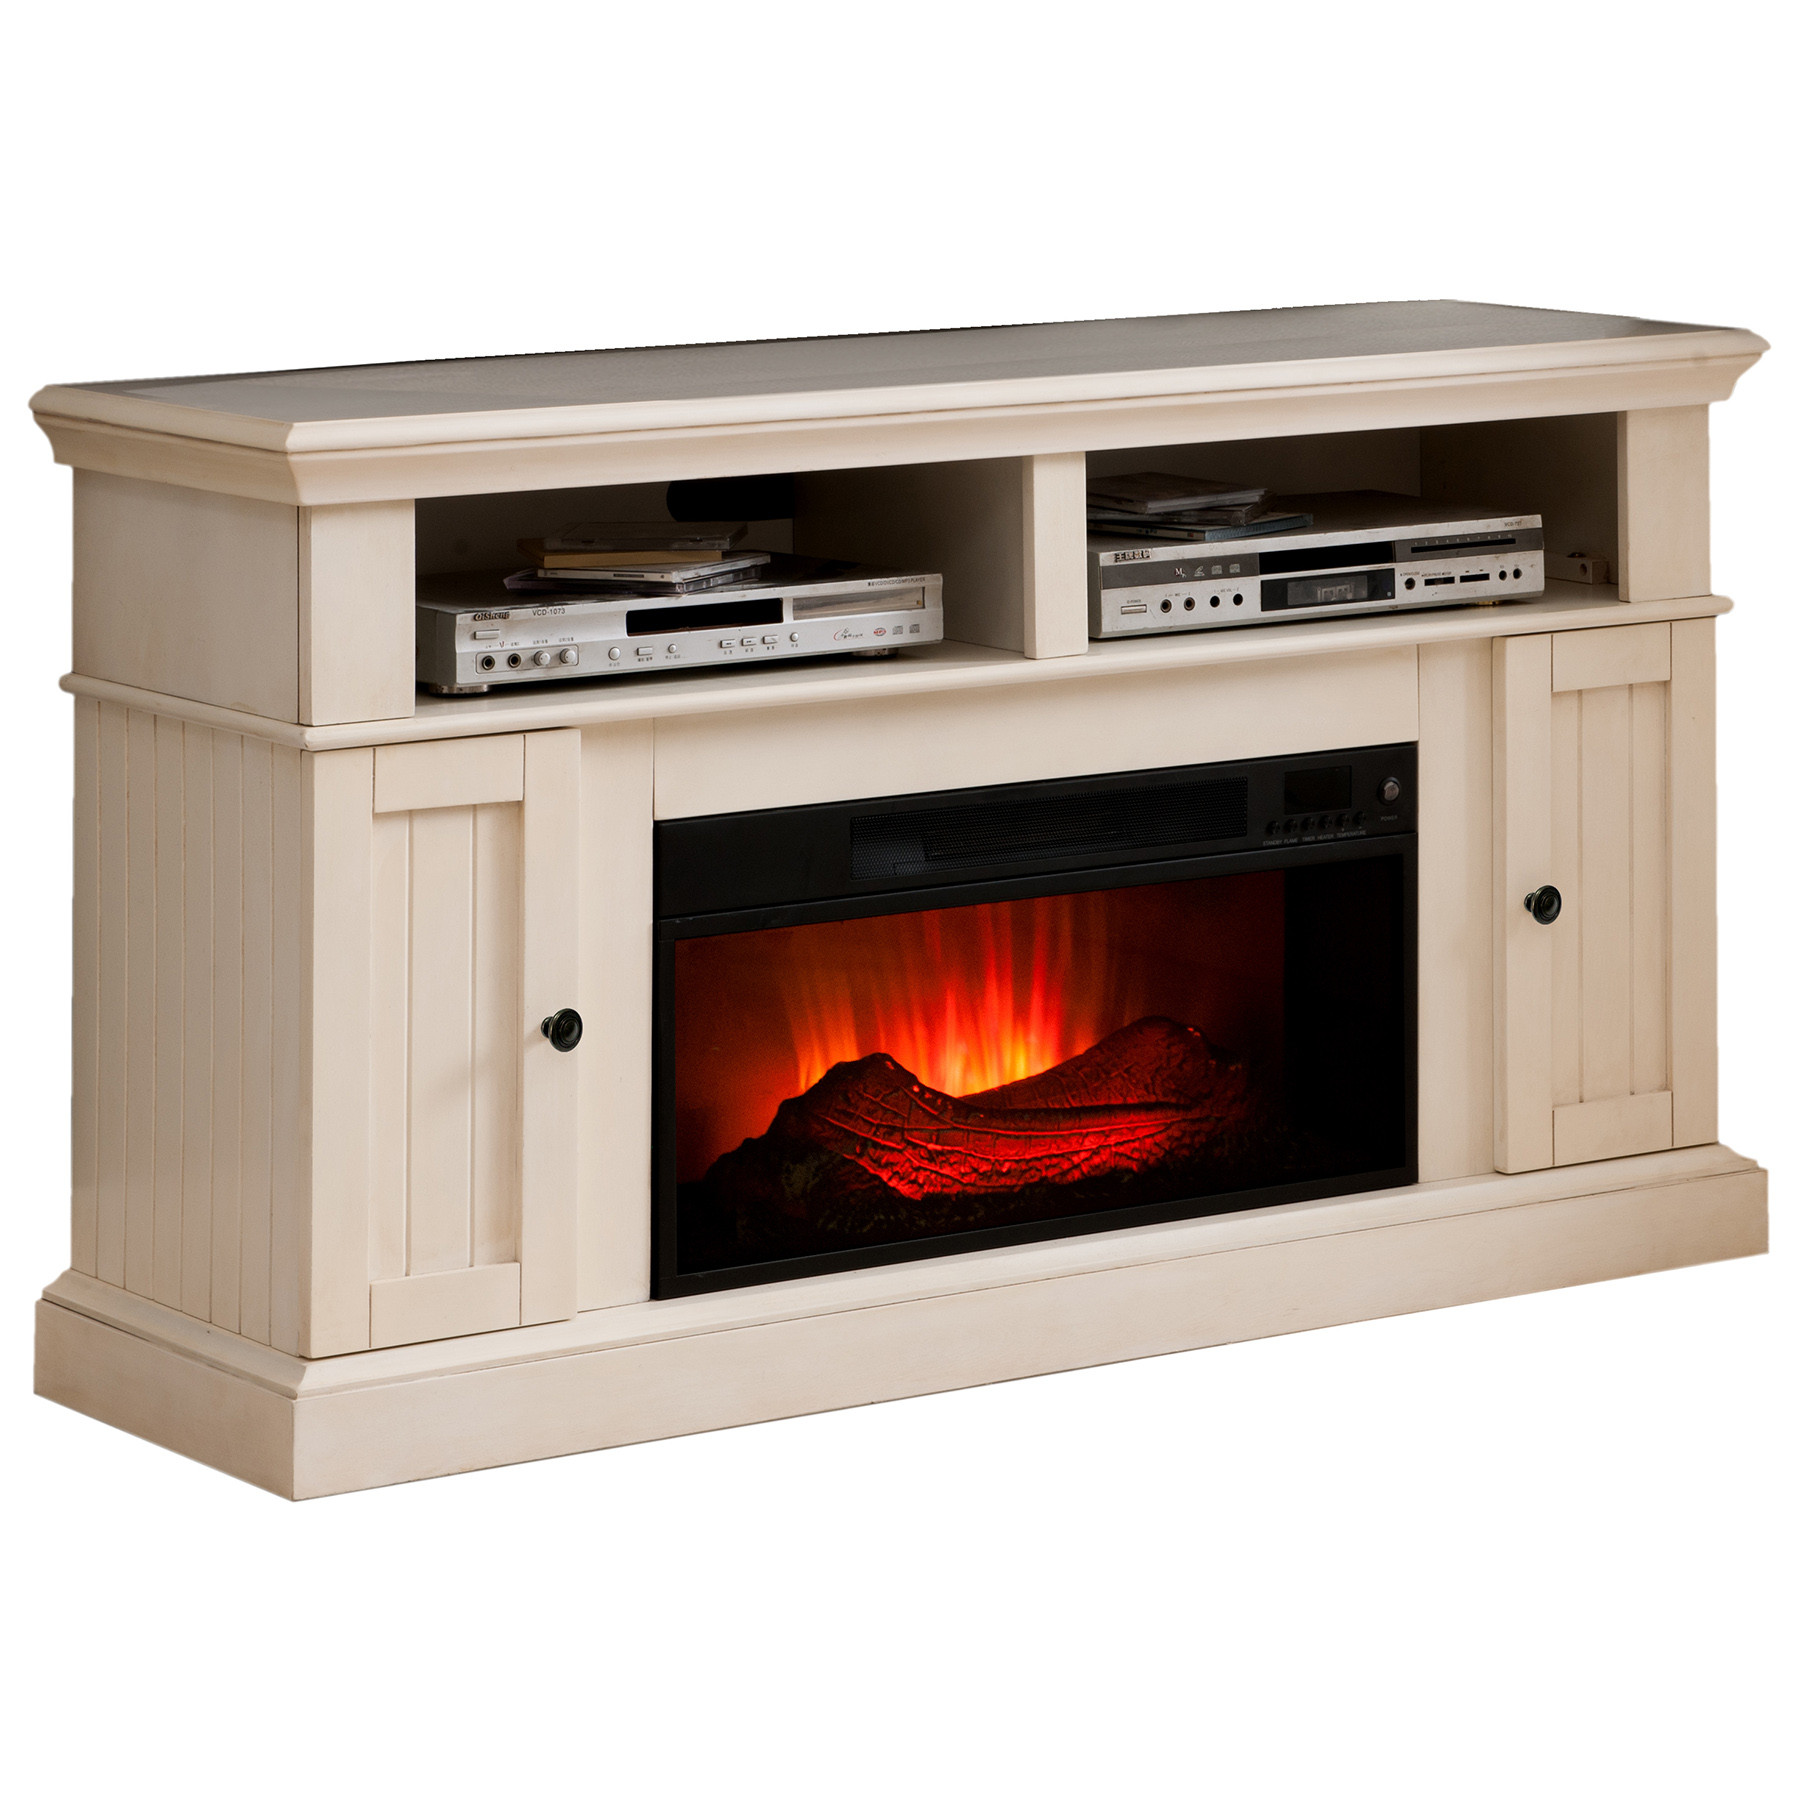 Best ideas about Kmart Fireplace Tv Stand . Save or Pin Winston Antique White Fireplace Now.